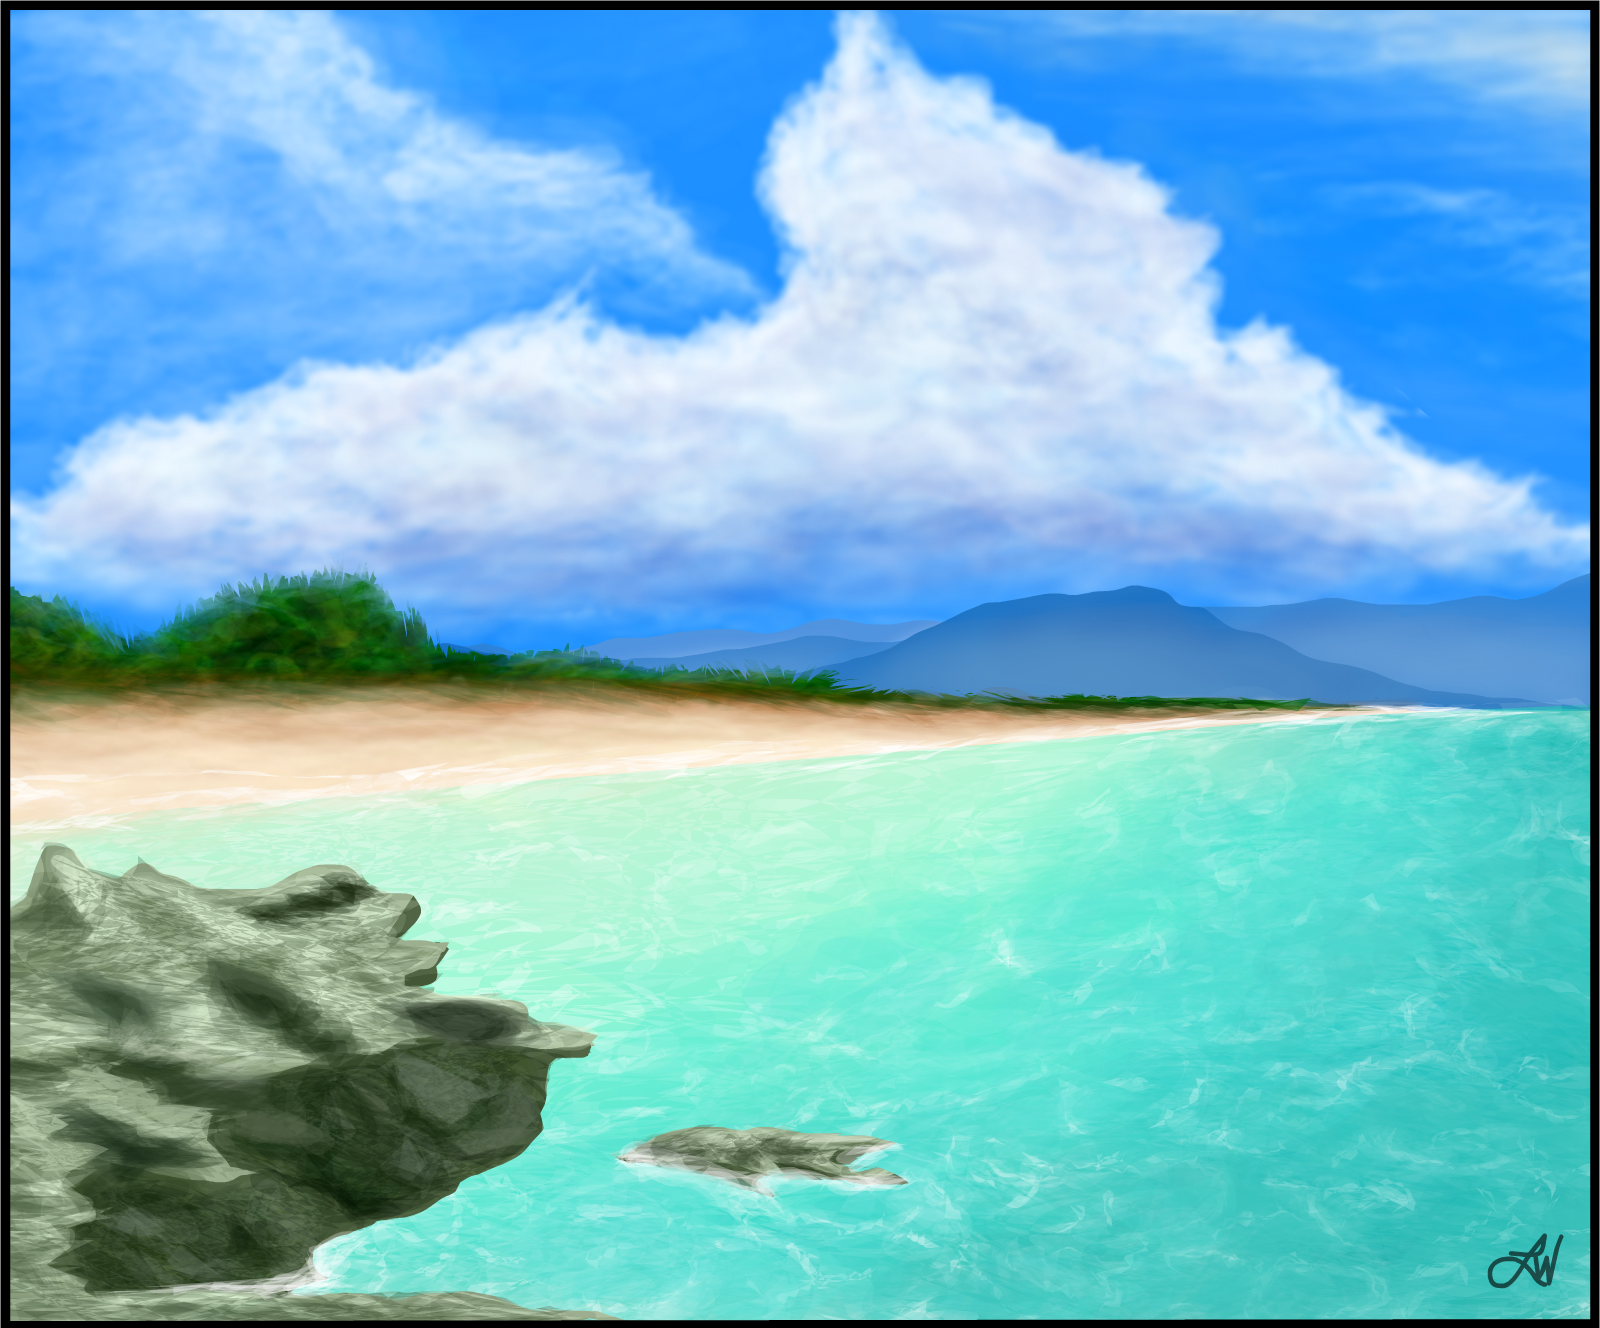 Yet Another Beach Scene